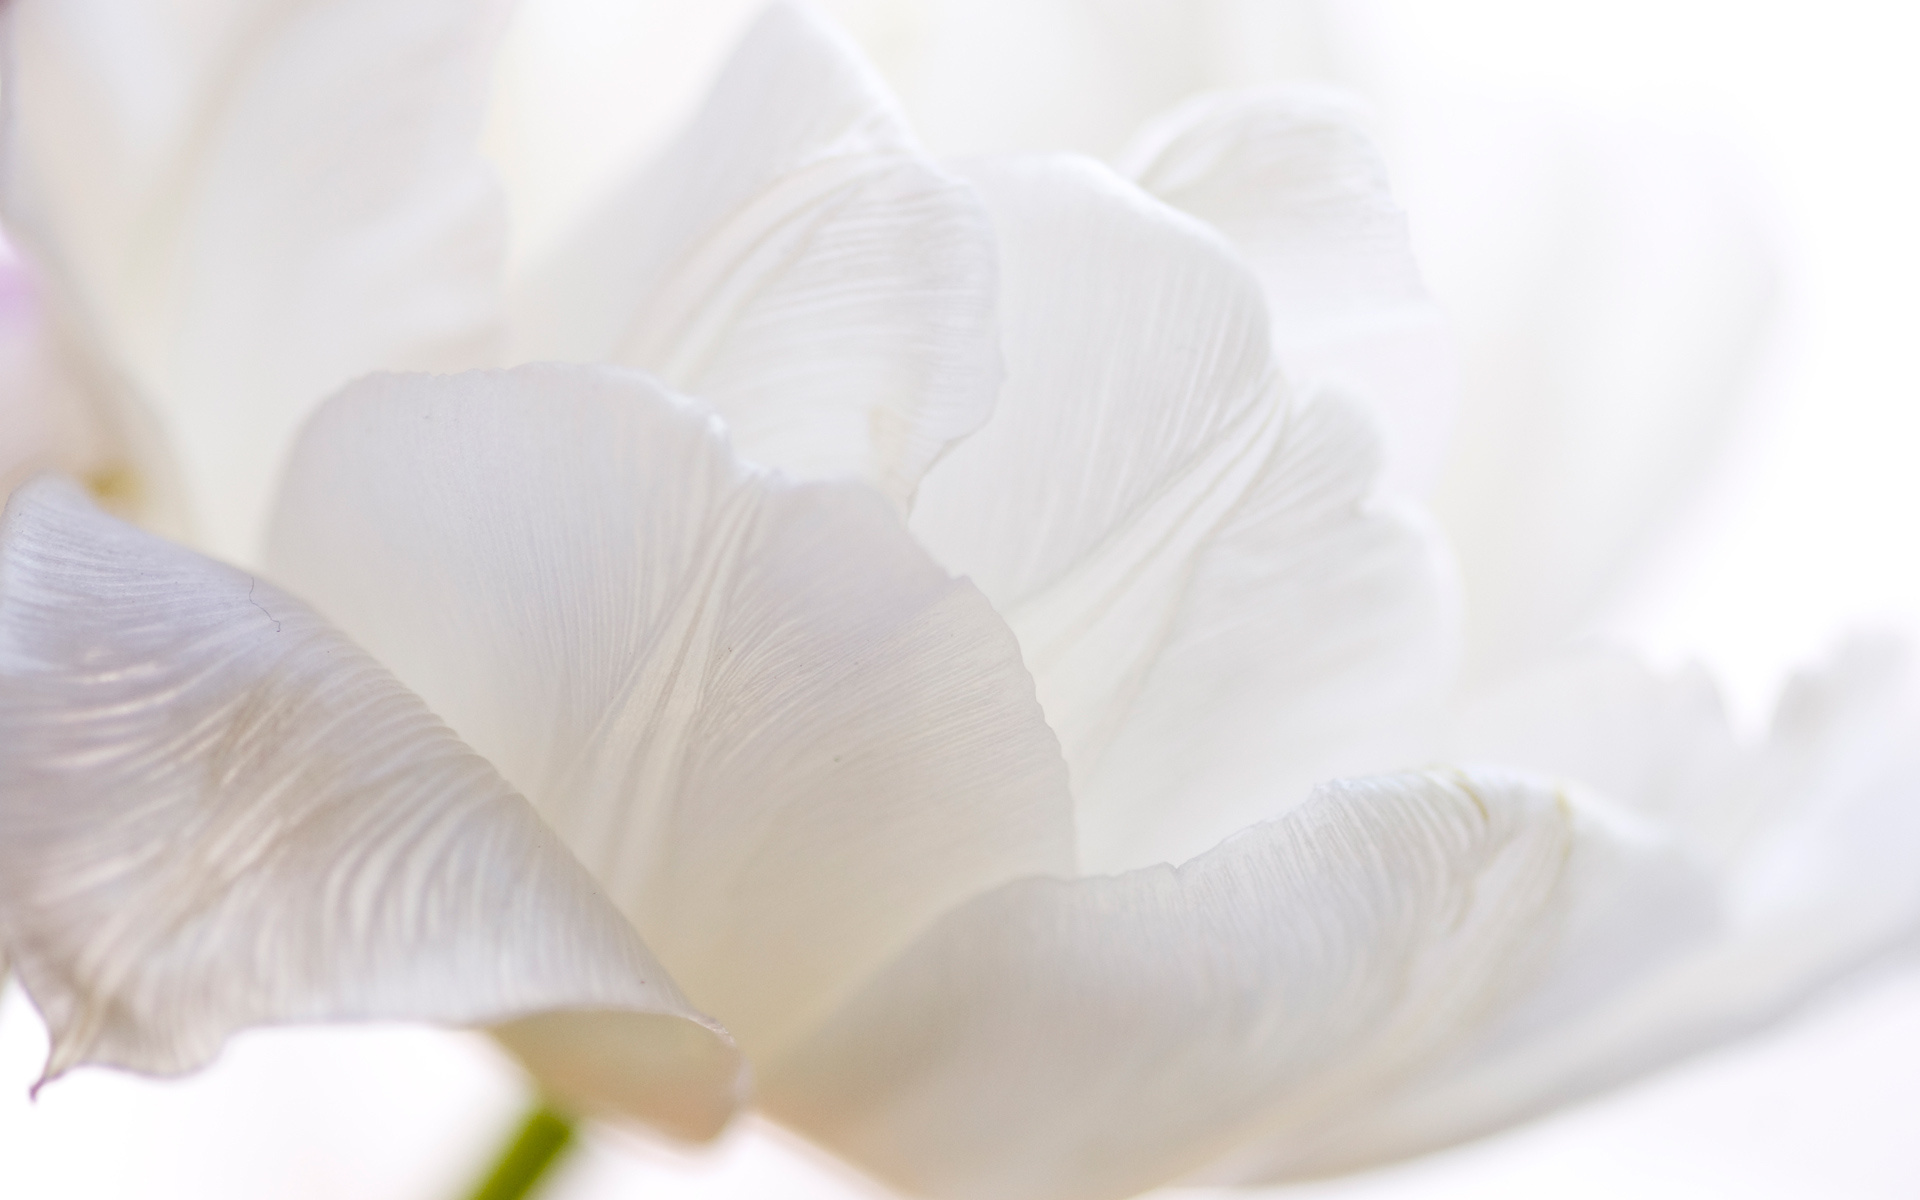 White Flowers Wallpaper for PC Full HD Pictures 1920x1200